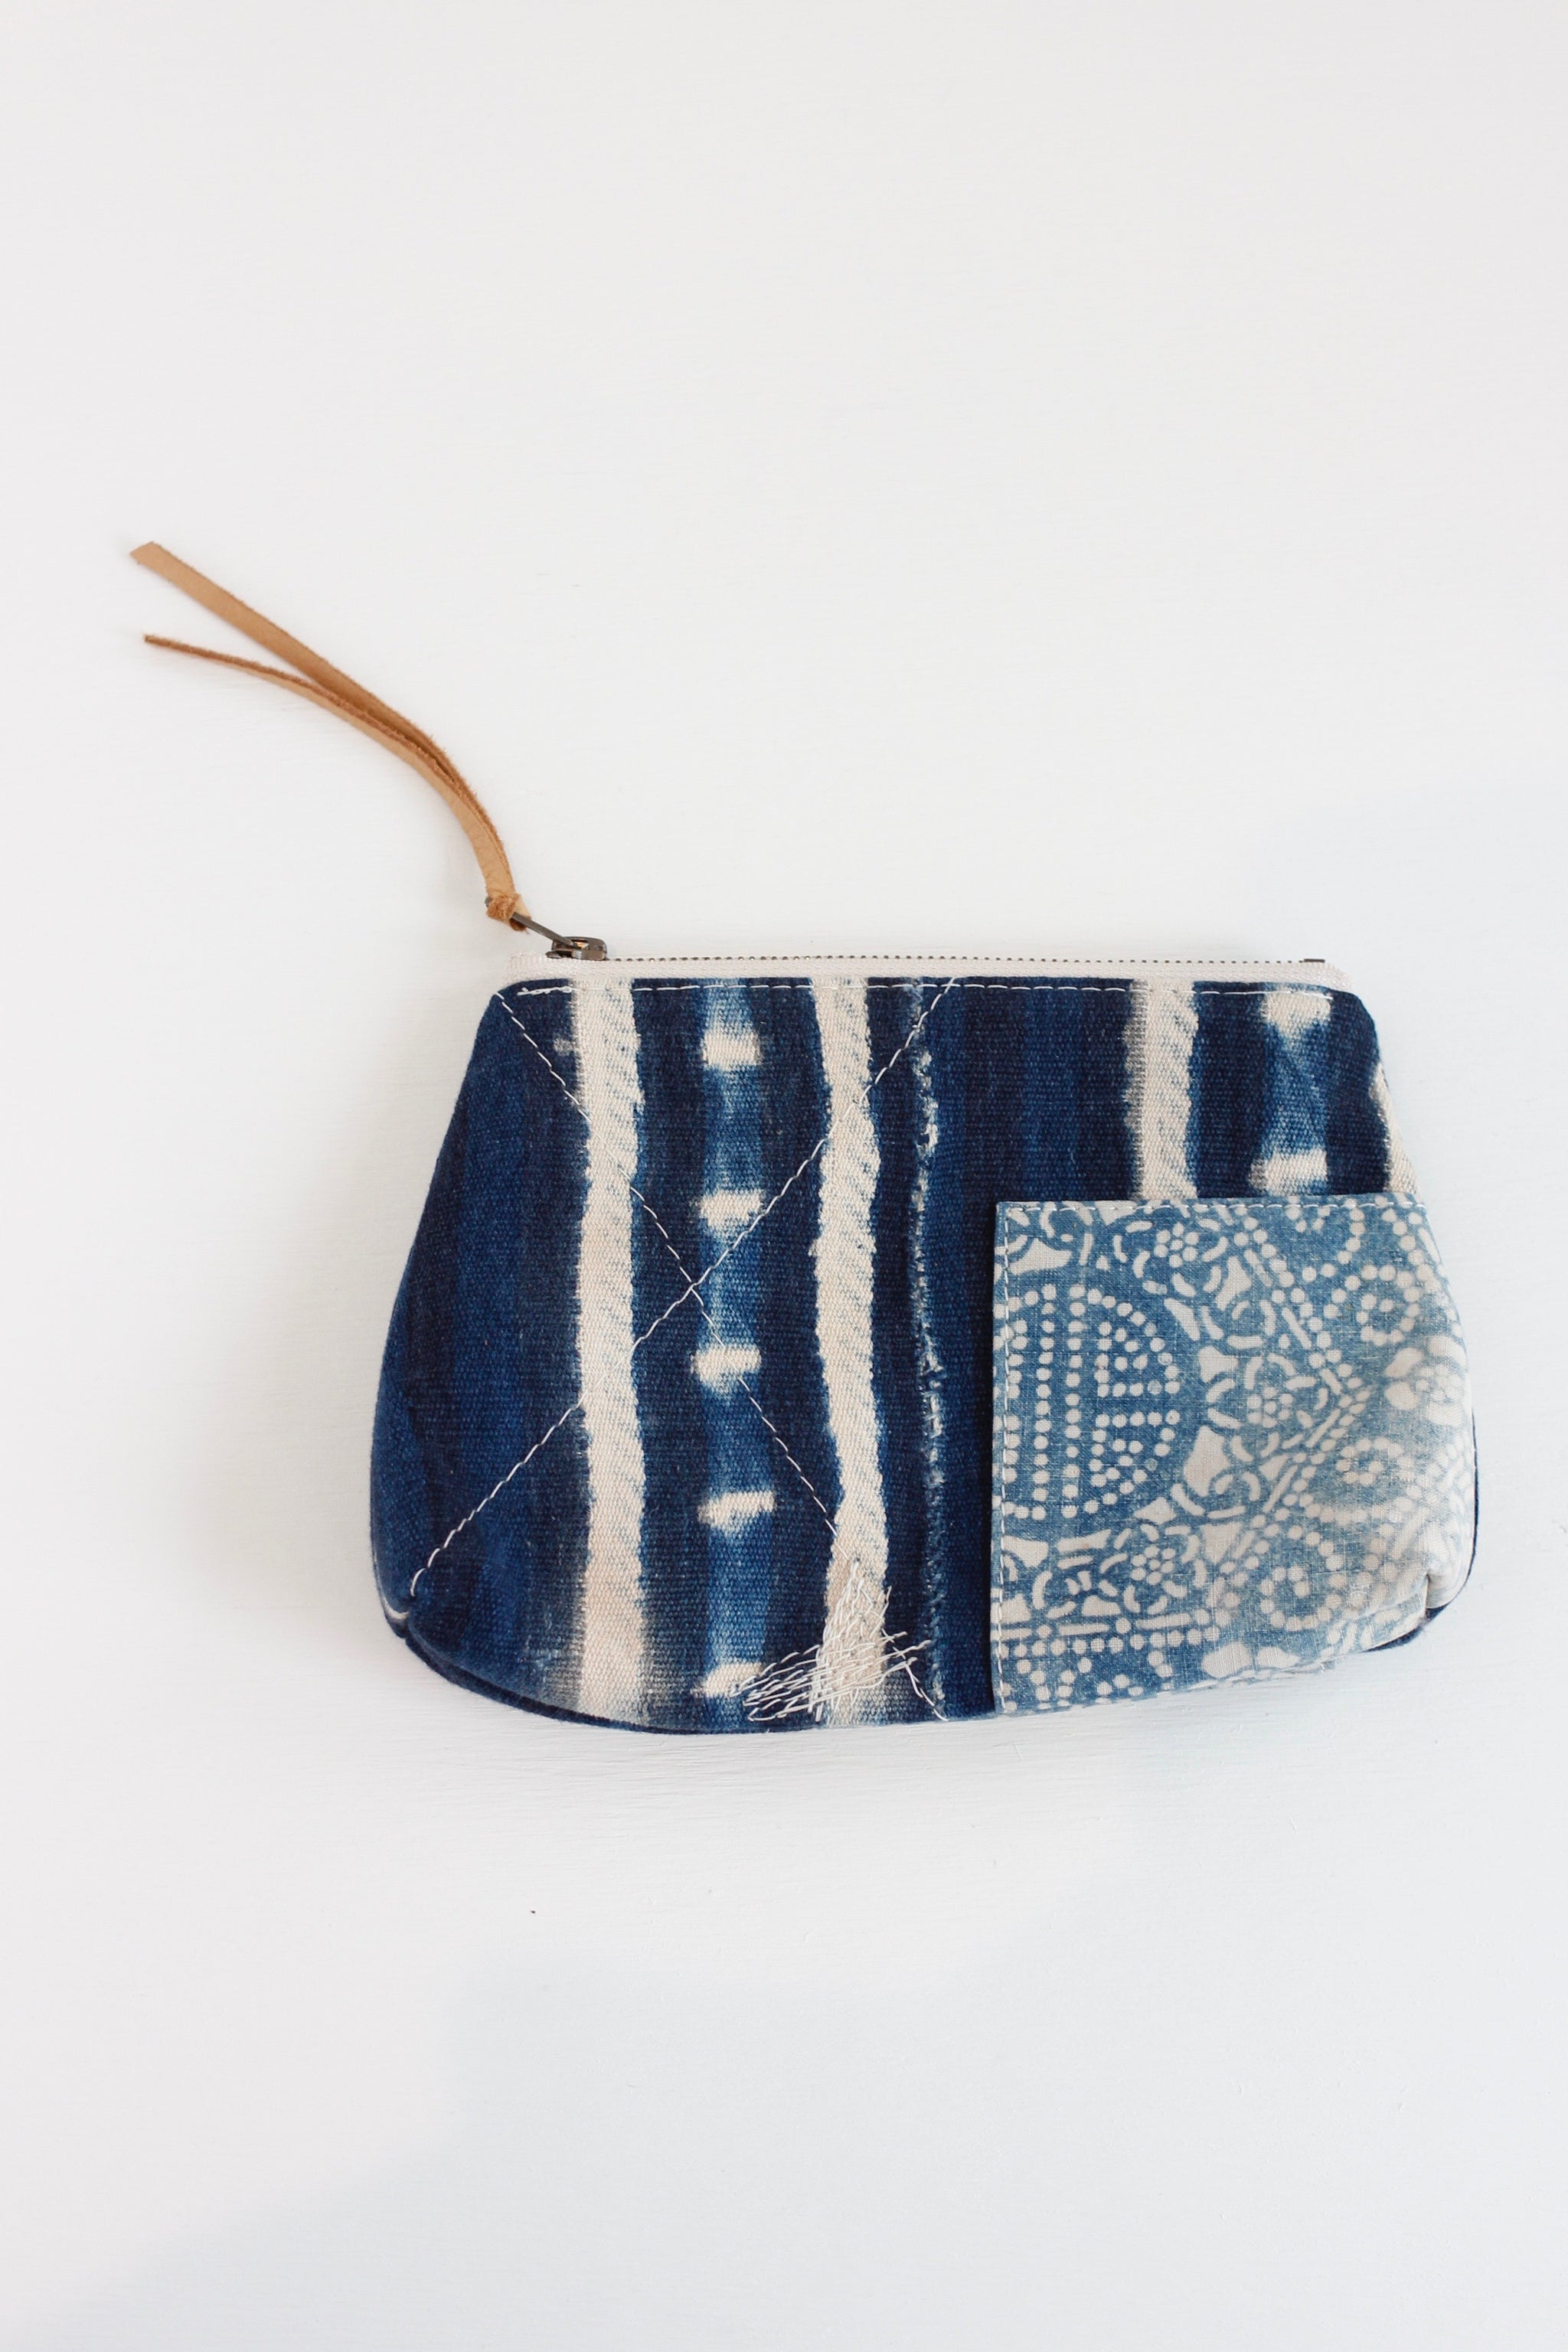 TOTEM SALVAGED Indigo Pouch